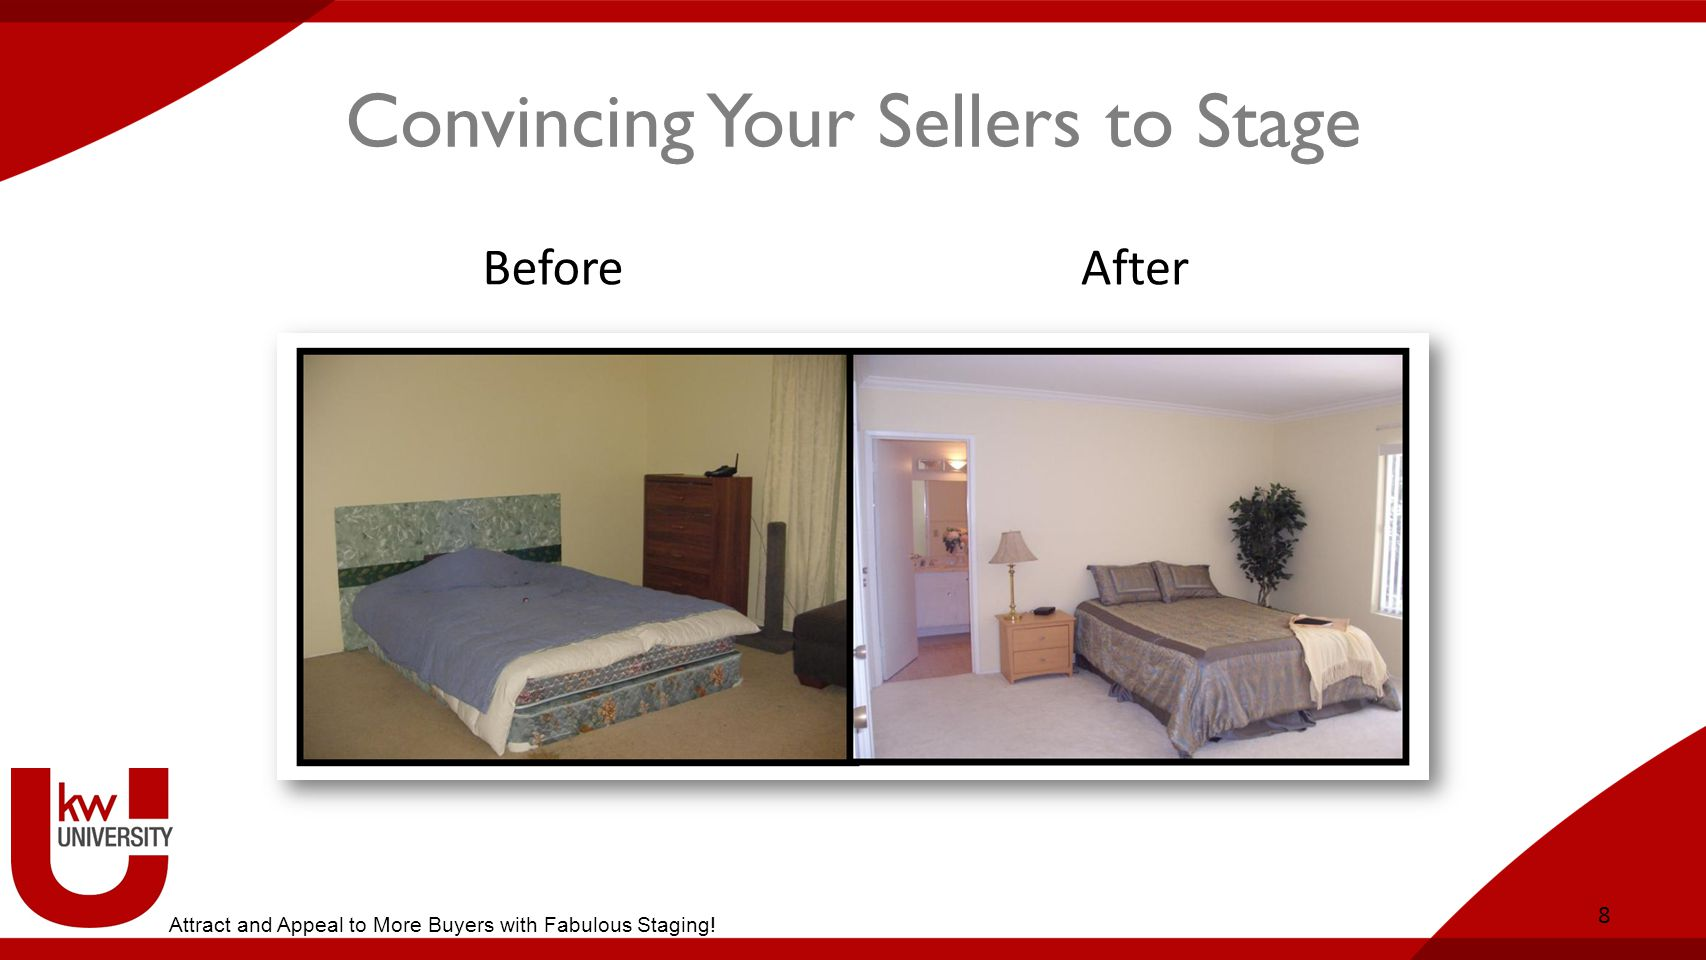 Convincing Your Sellers to Stage 8 BeforeAfter Attract and Appeal to More Buyers with Fabulous Staging!